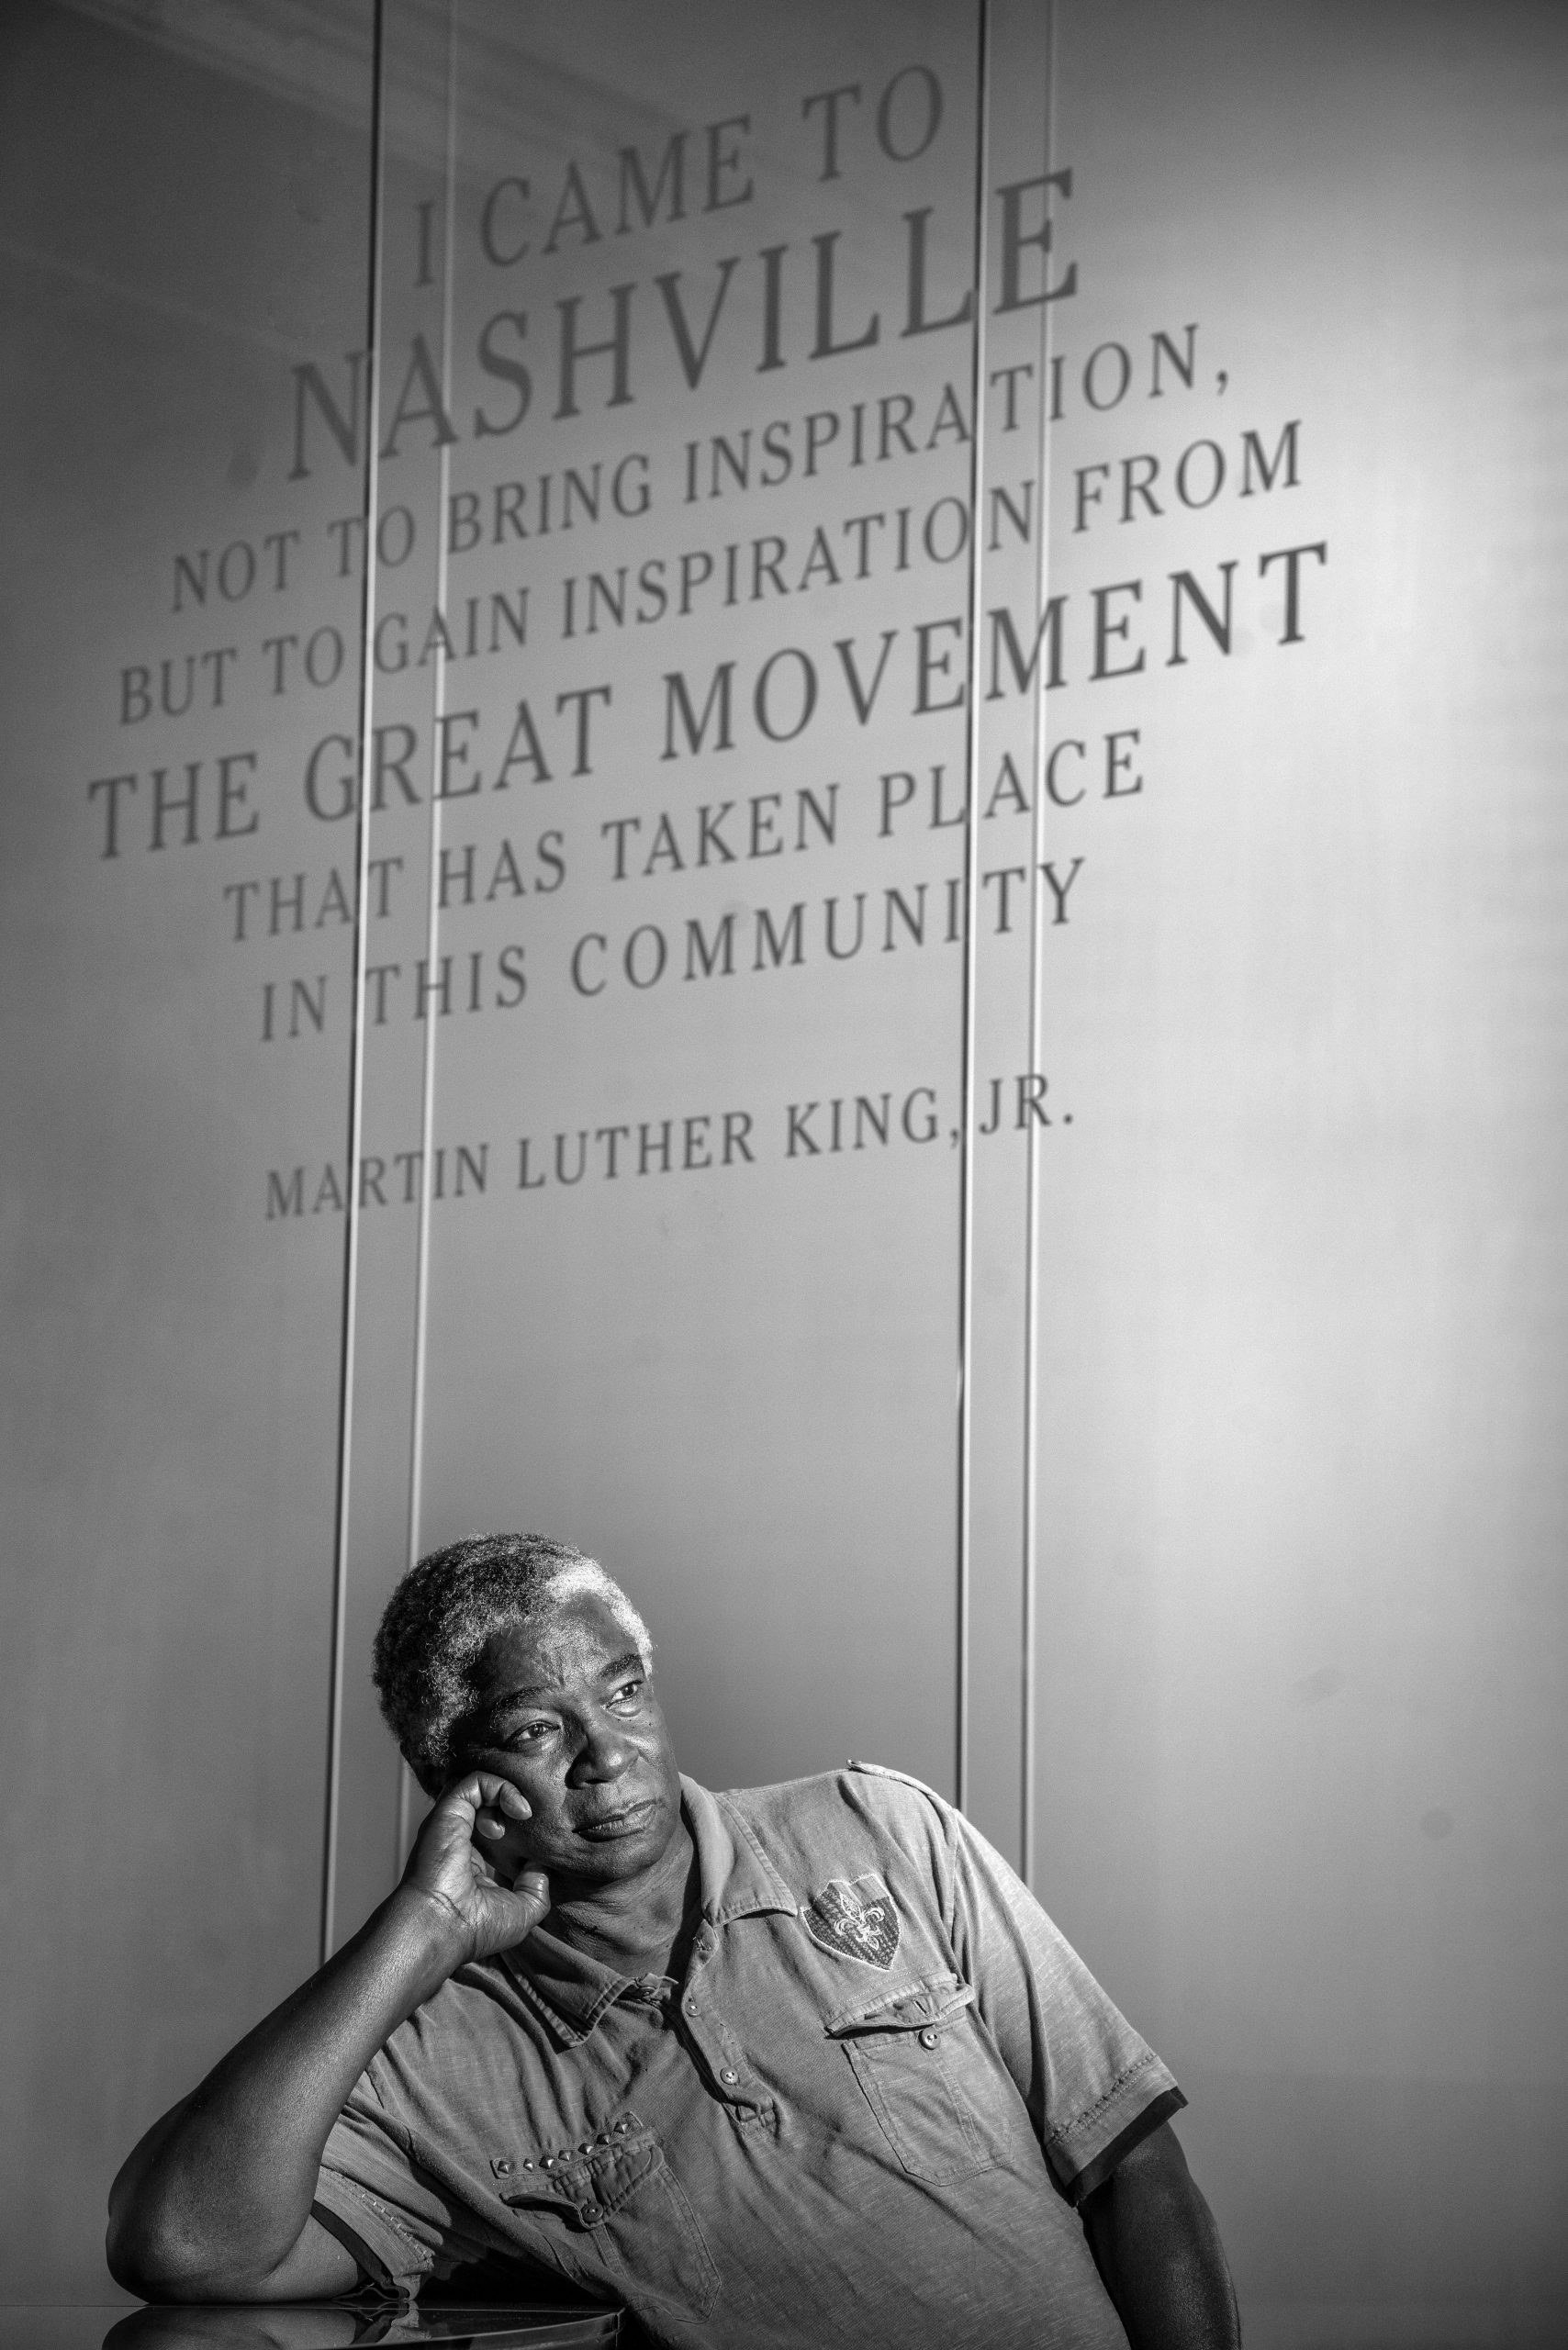 Frederick Leonard's nature vacillated between the non-violent teachings of Rev. Martin Luther King, Jr. and Rev. James Lawson and a desire to fight back. (Photo: John Partipilo)